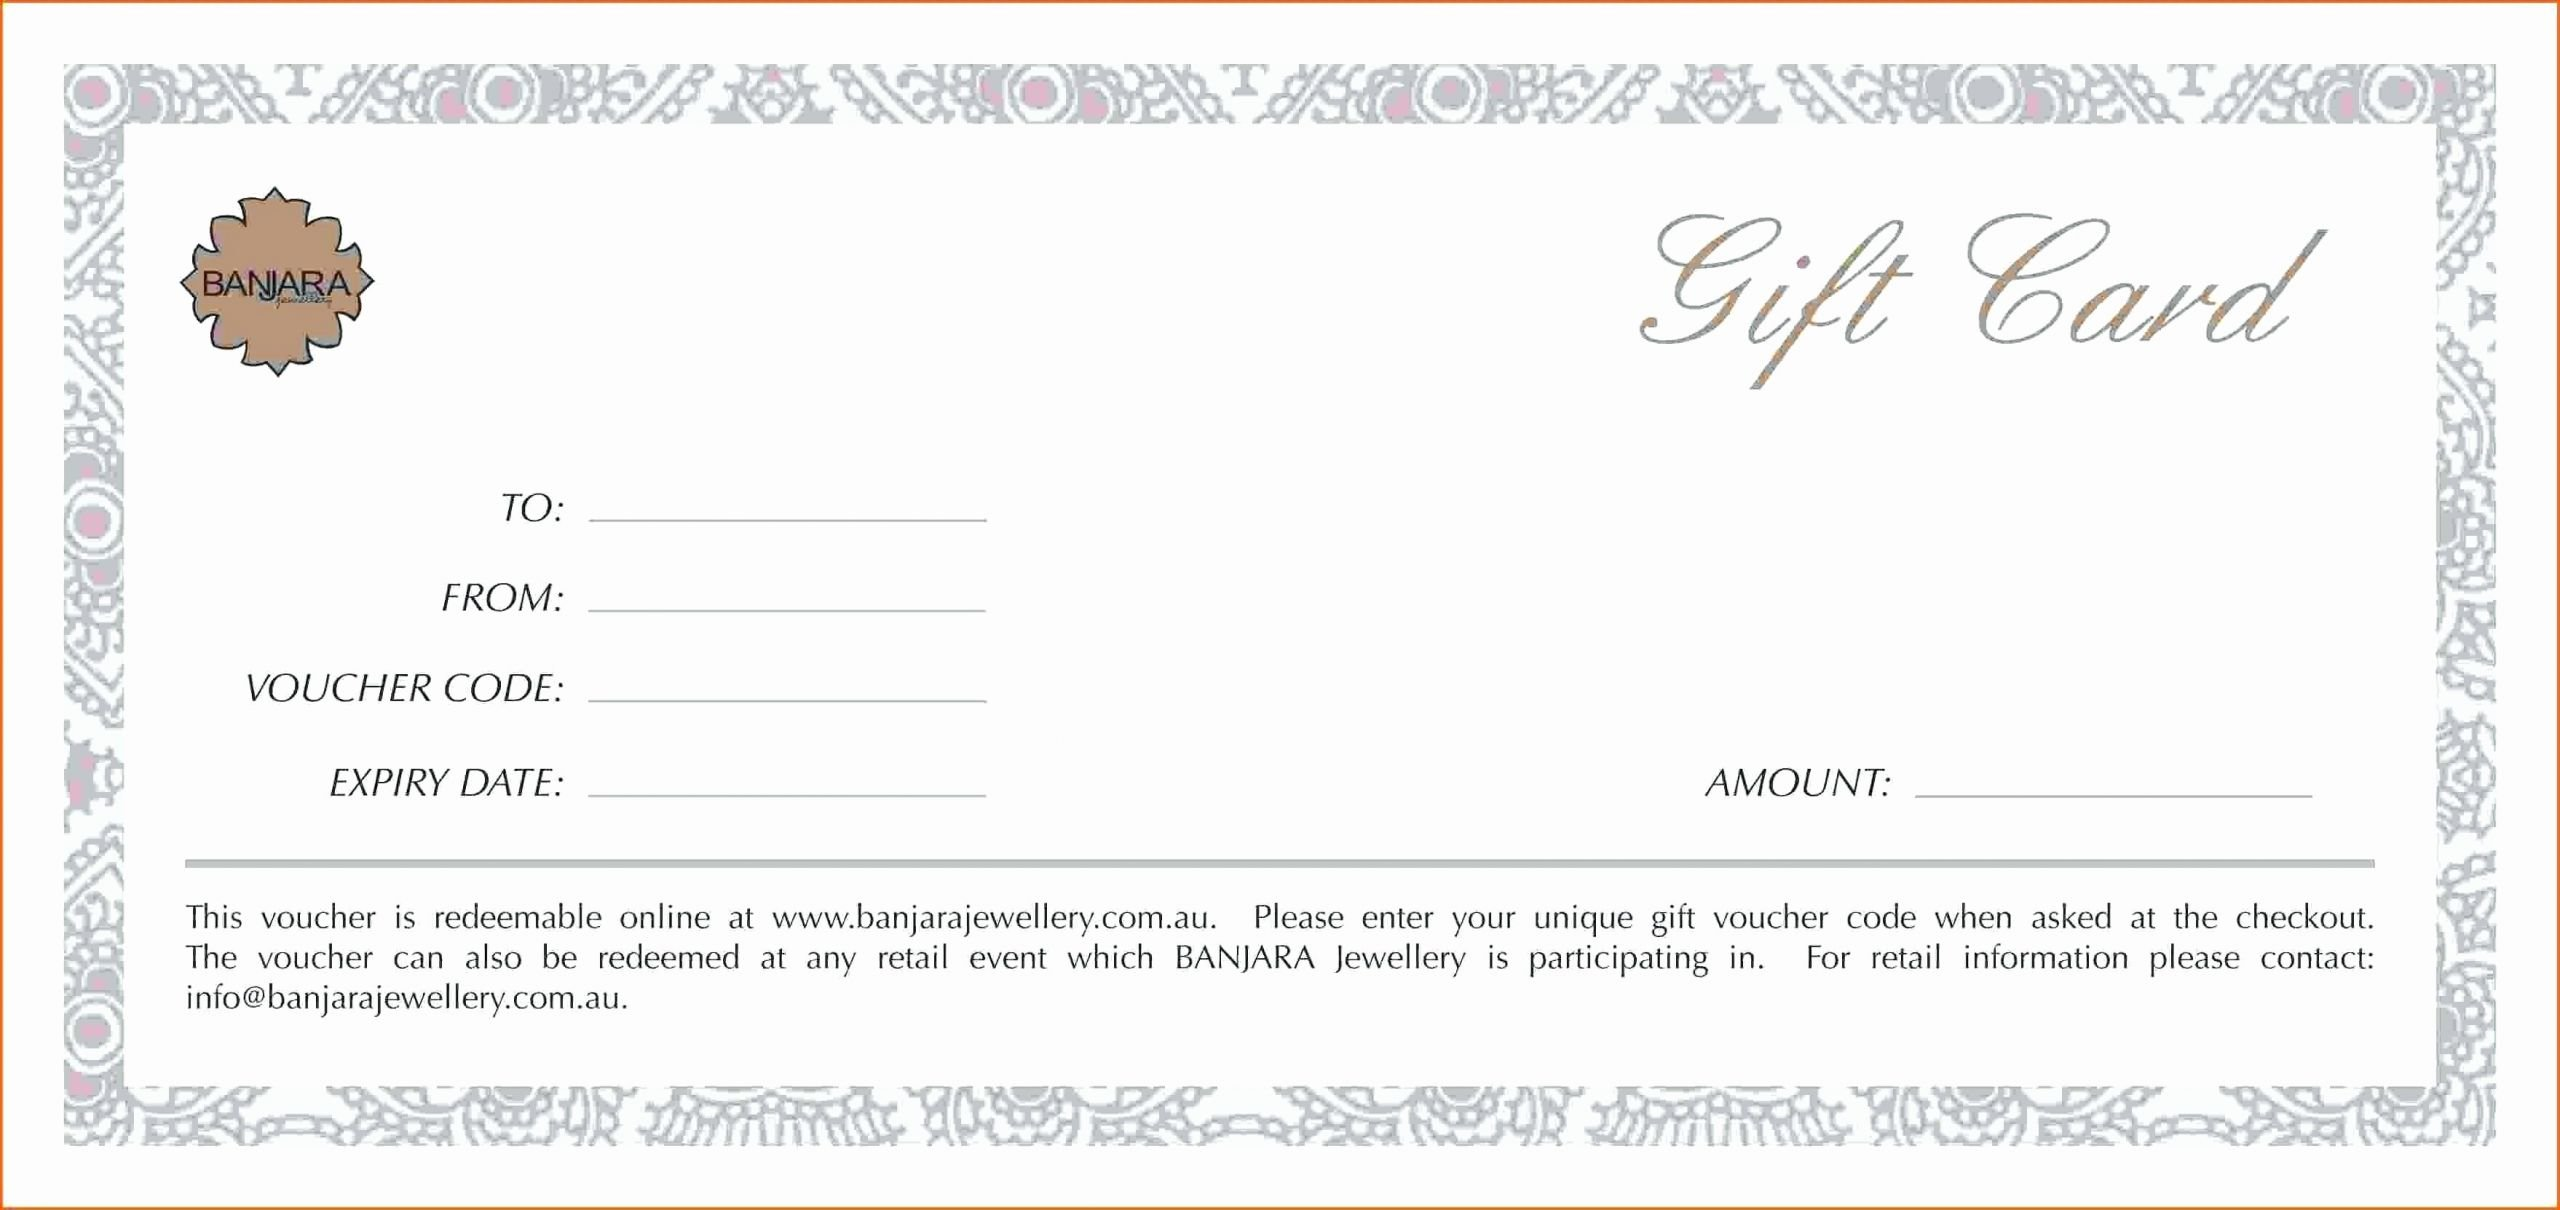 Babysitting Gift Certificate Template Inspirational Voucher Maker